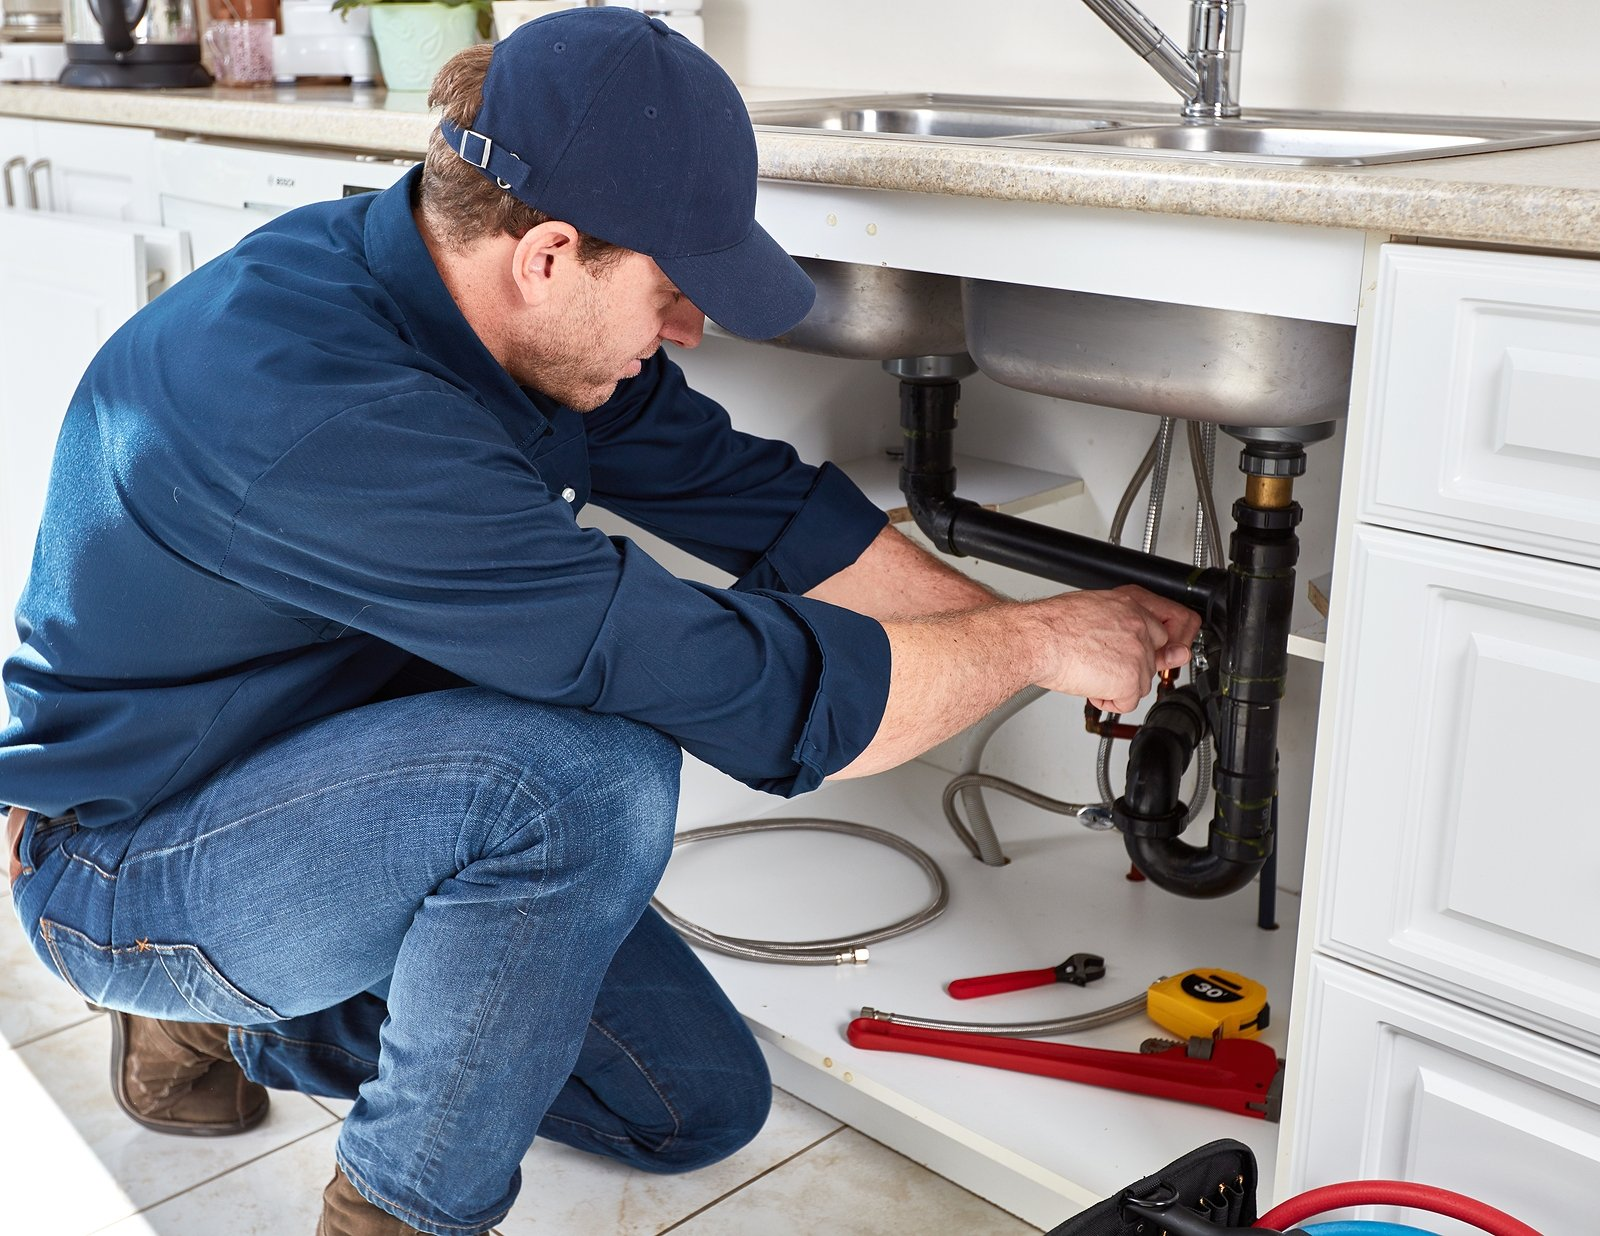 Plumber-in-Dark-Blue-Uniform-Working-on-Kitchen-Sink-Plumbing-Under-Counter